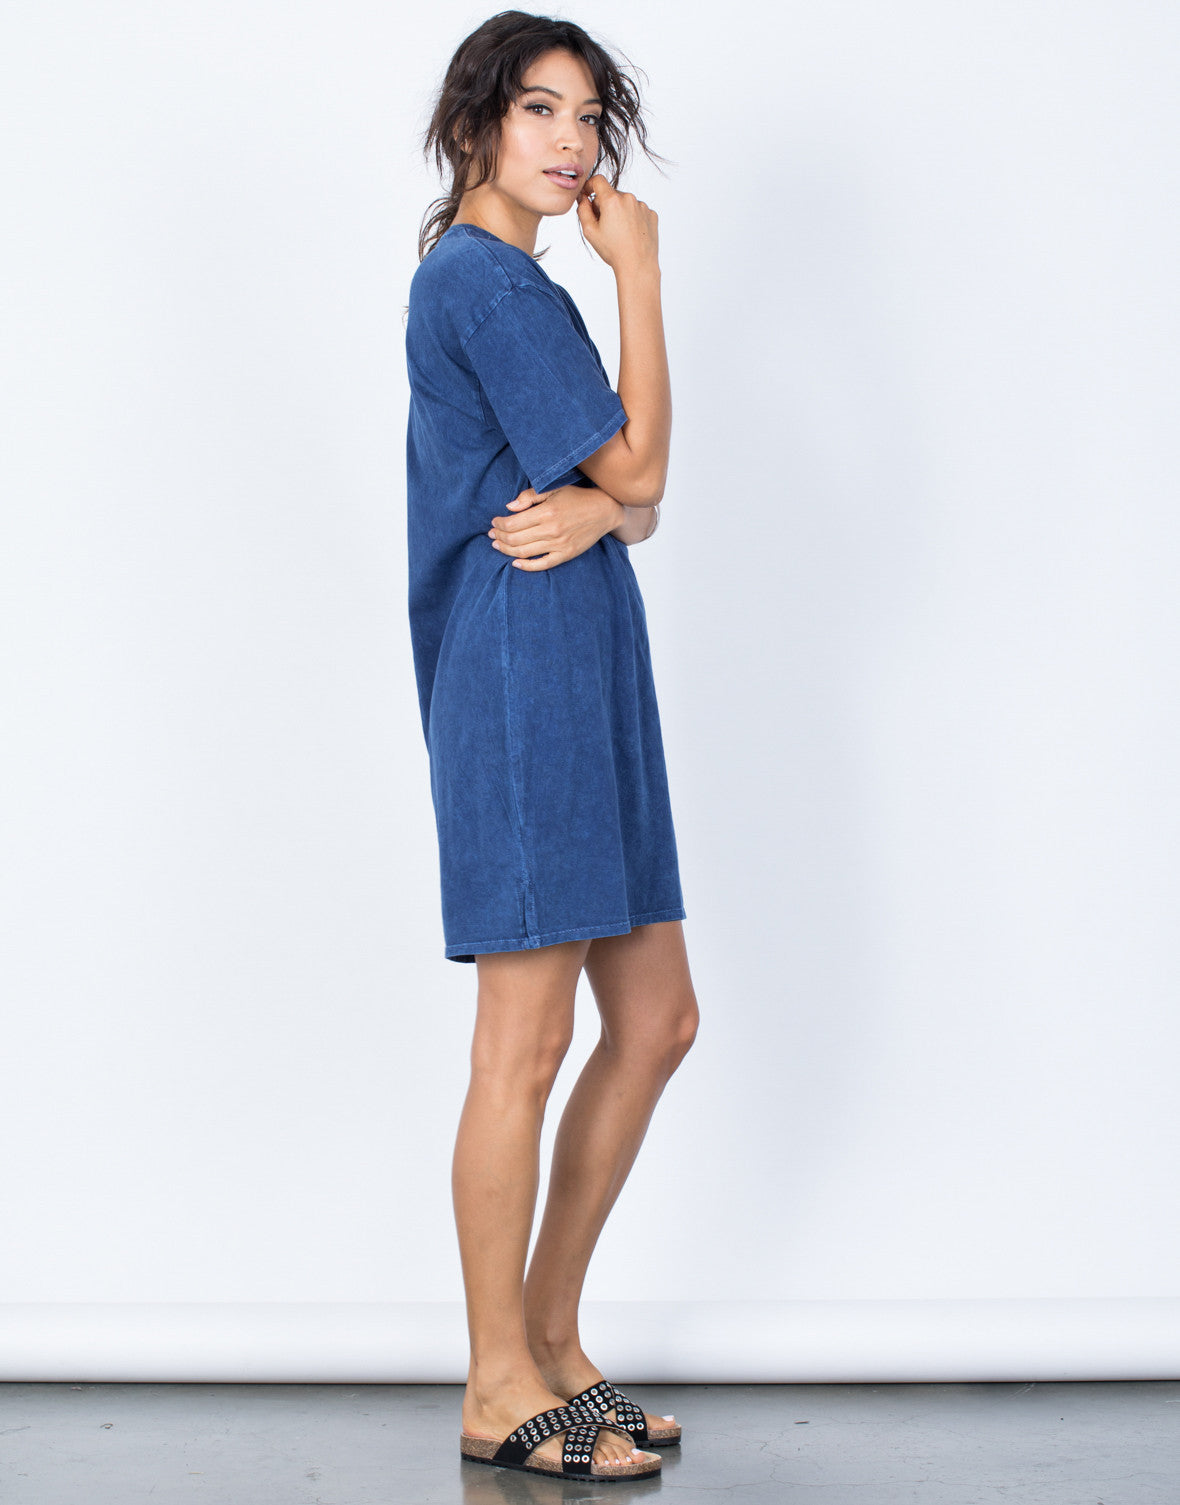 Dark Blue Andy Tee Dress - Side View